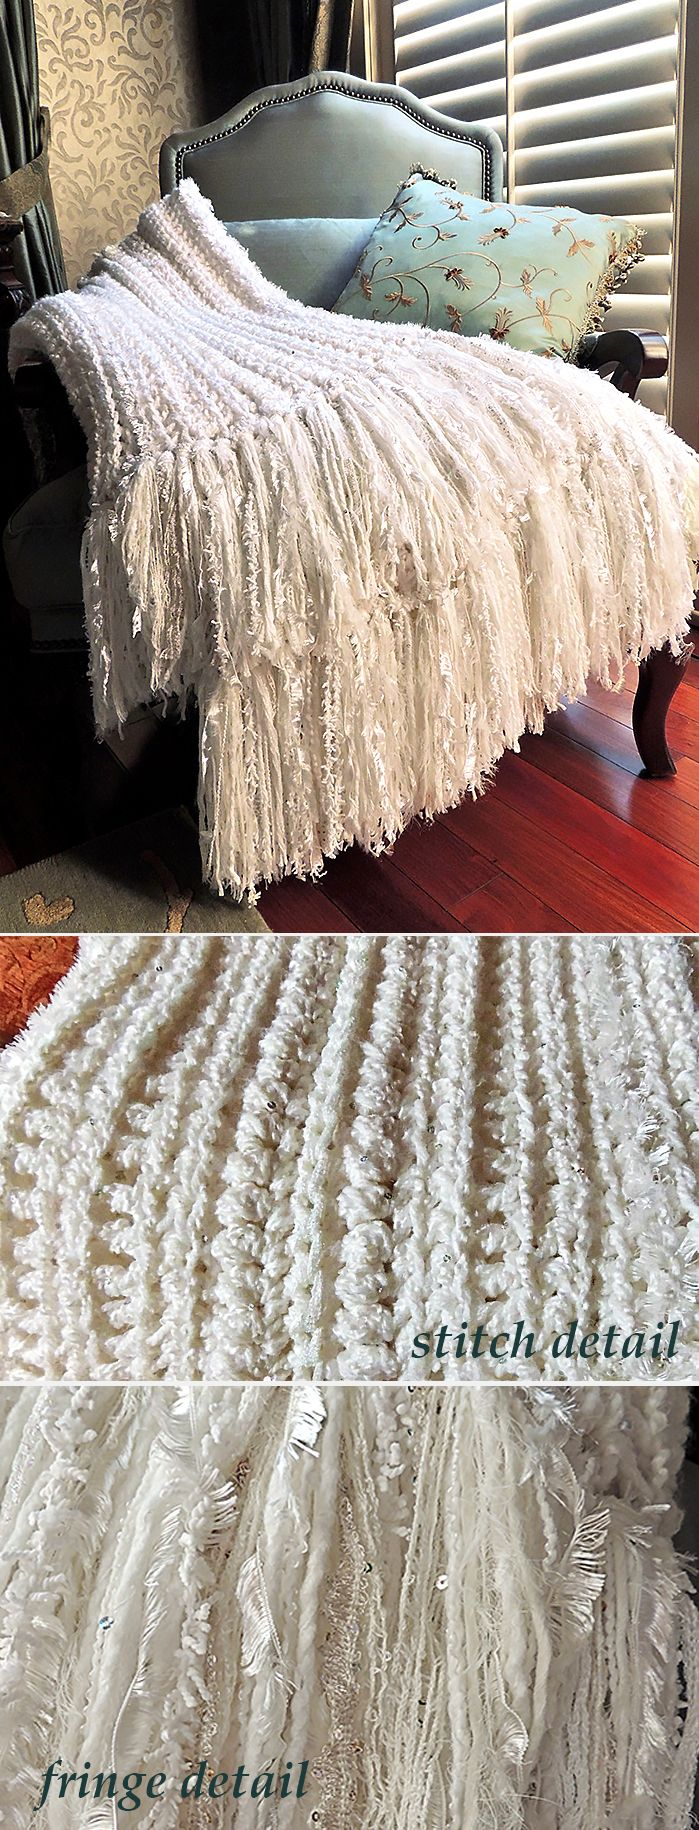 "Latest addition from my Crochet Obsession - White doesn't have to be boring! Afghan crocheted in single, 1/2 double, double and double-single stitch. Body is 2 strands - 1 Deborah Norville Sequin chunky and 1 Lionbrand Homespun using a ""Q"" hook. Finished off with a fluffy and unique 11"" fringe made with Eyelash, scarf yarn and various other chunky yarns. So soft and so pretty!"